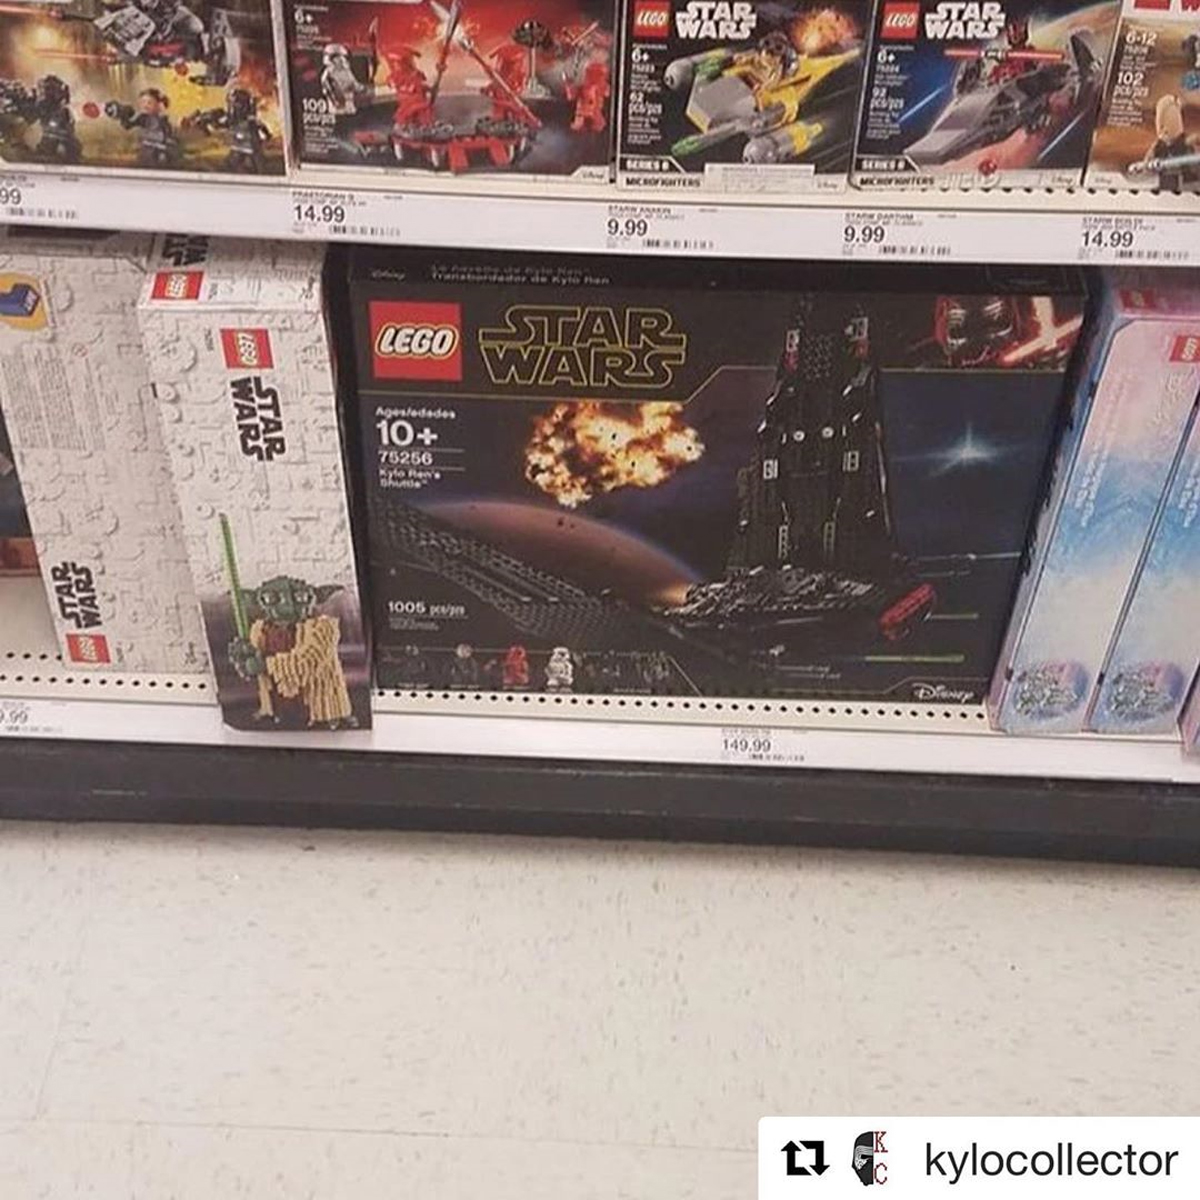 More Lego Star Wars The Rise Of Skywalker Sets Spotted